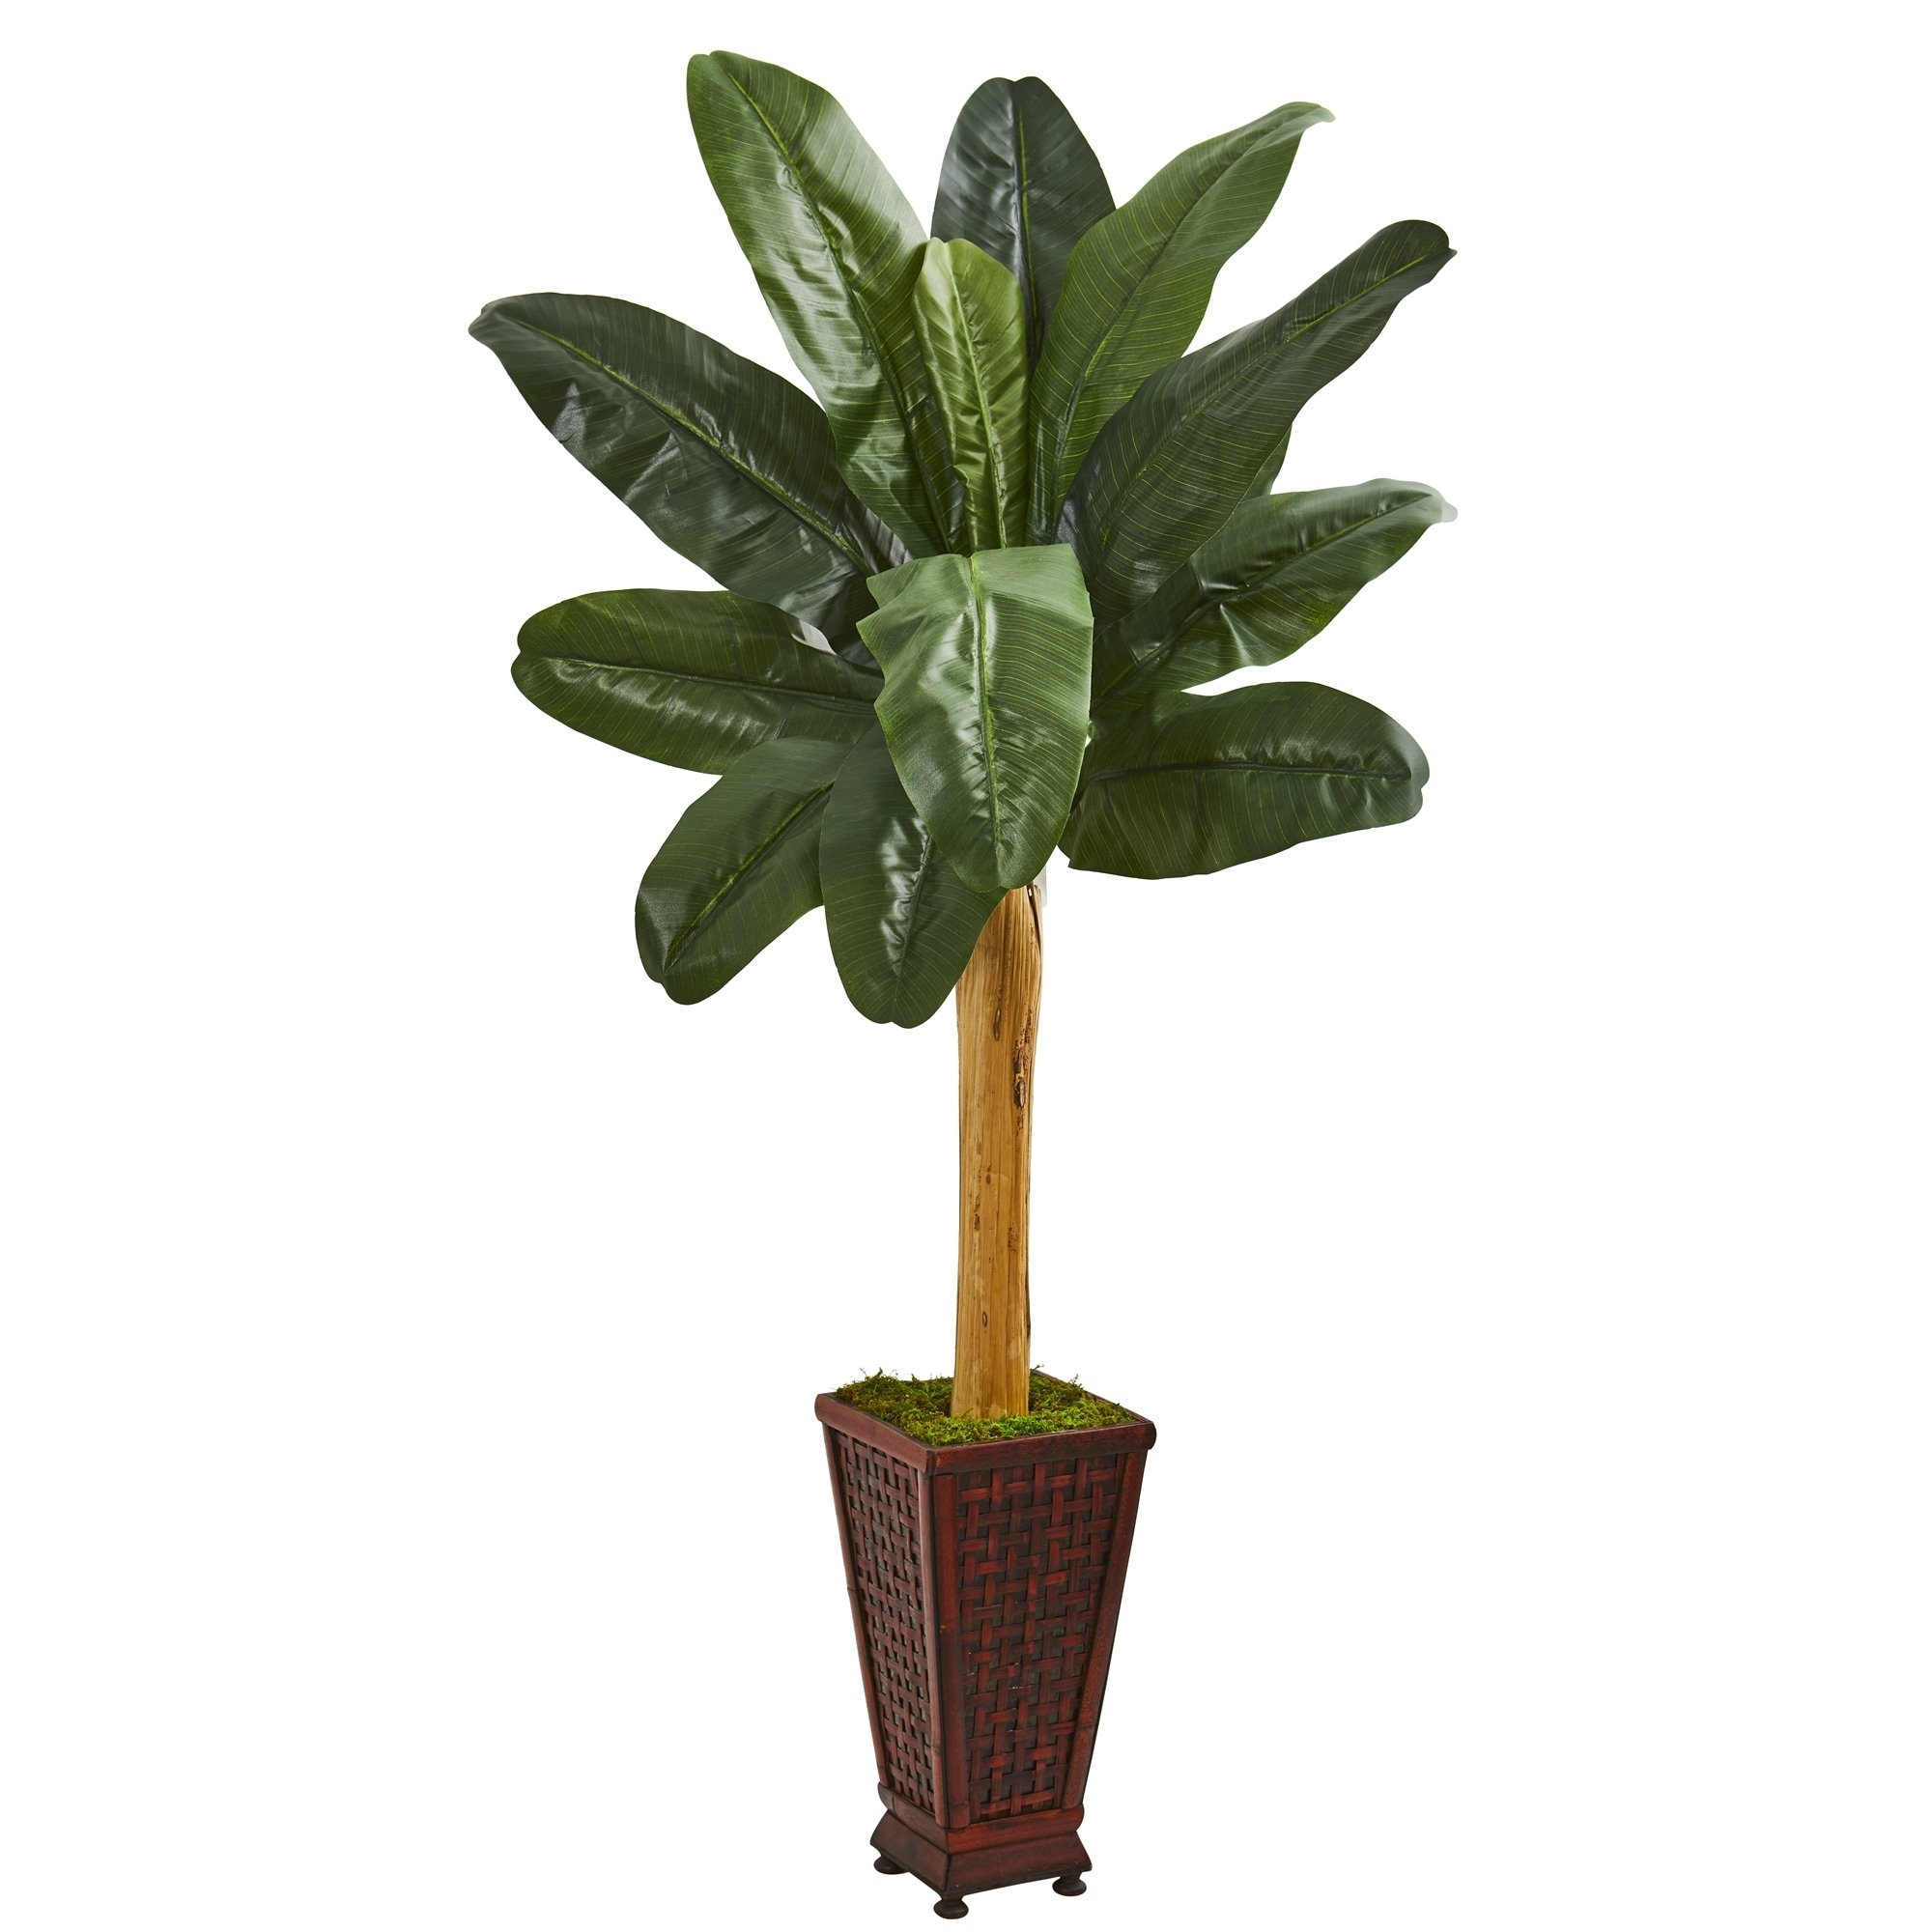 63 Banana Artificial Tree in Decorative Planter